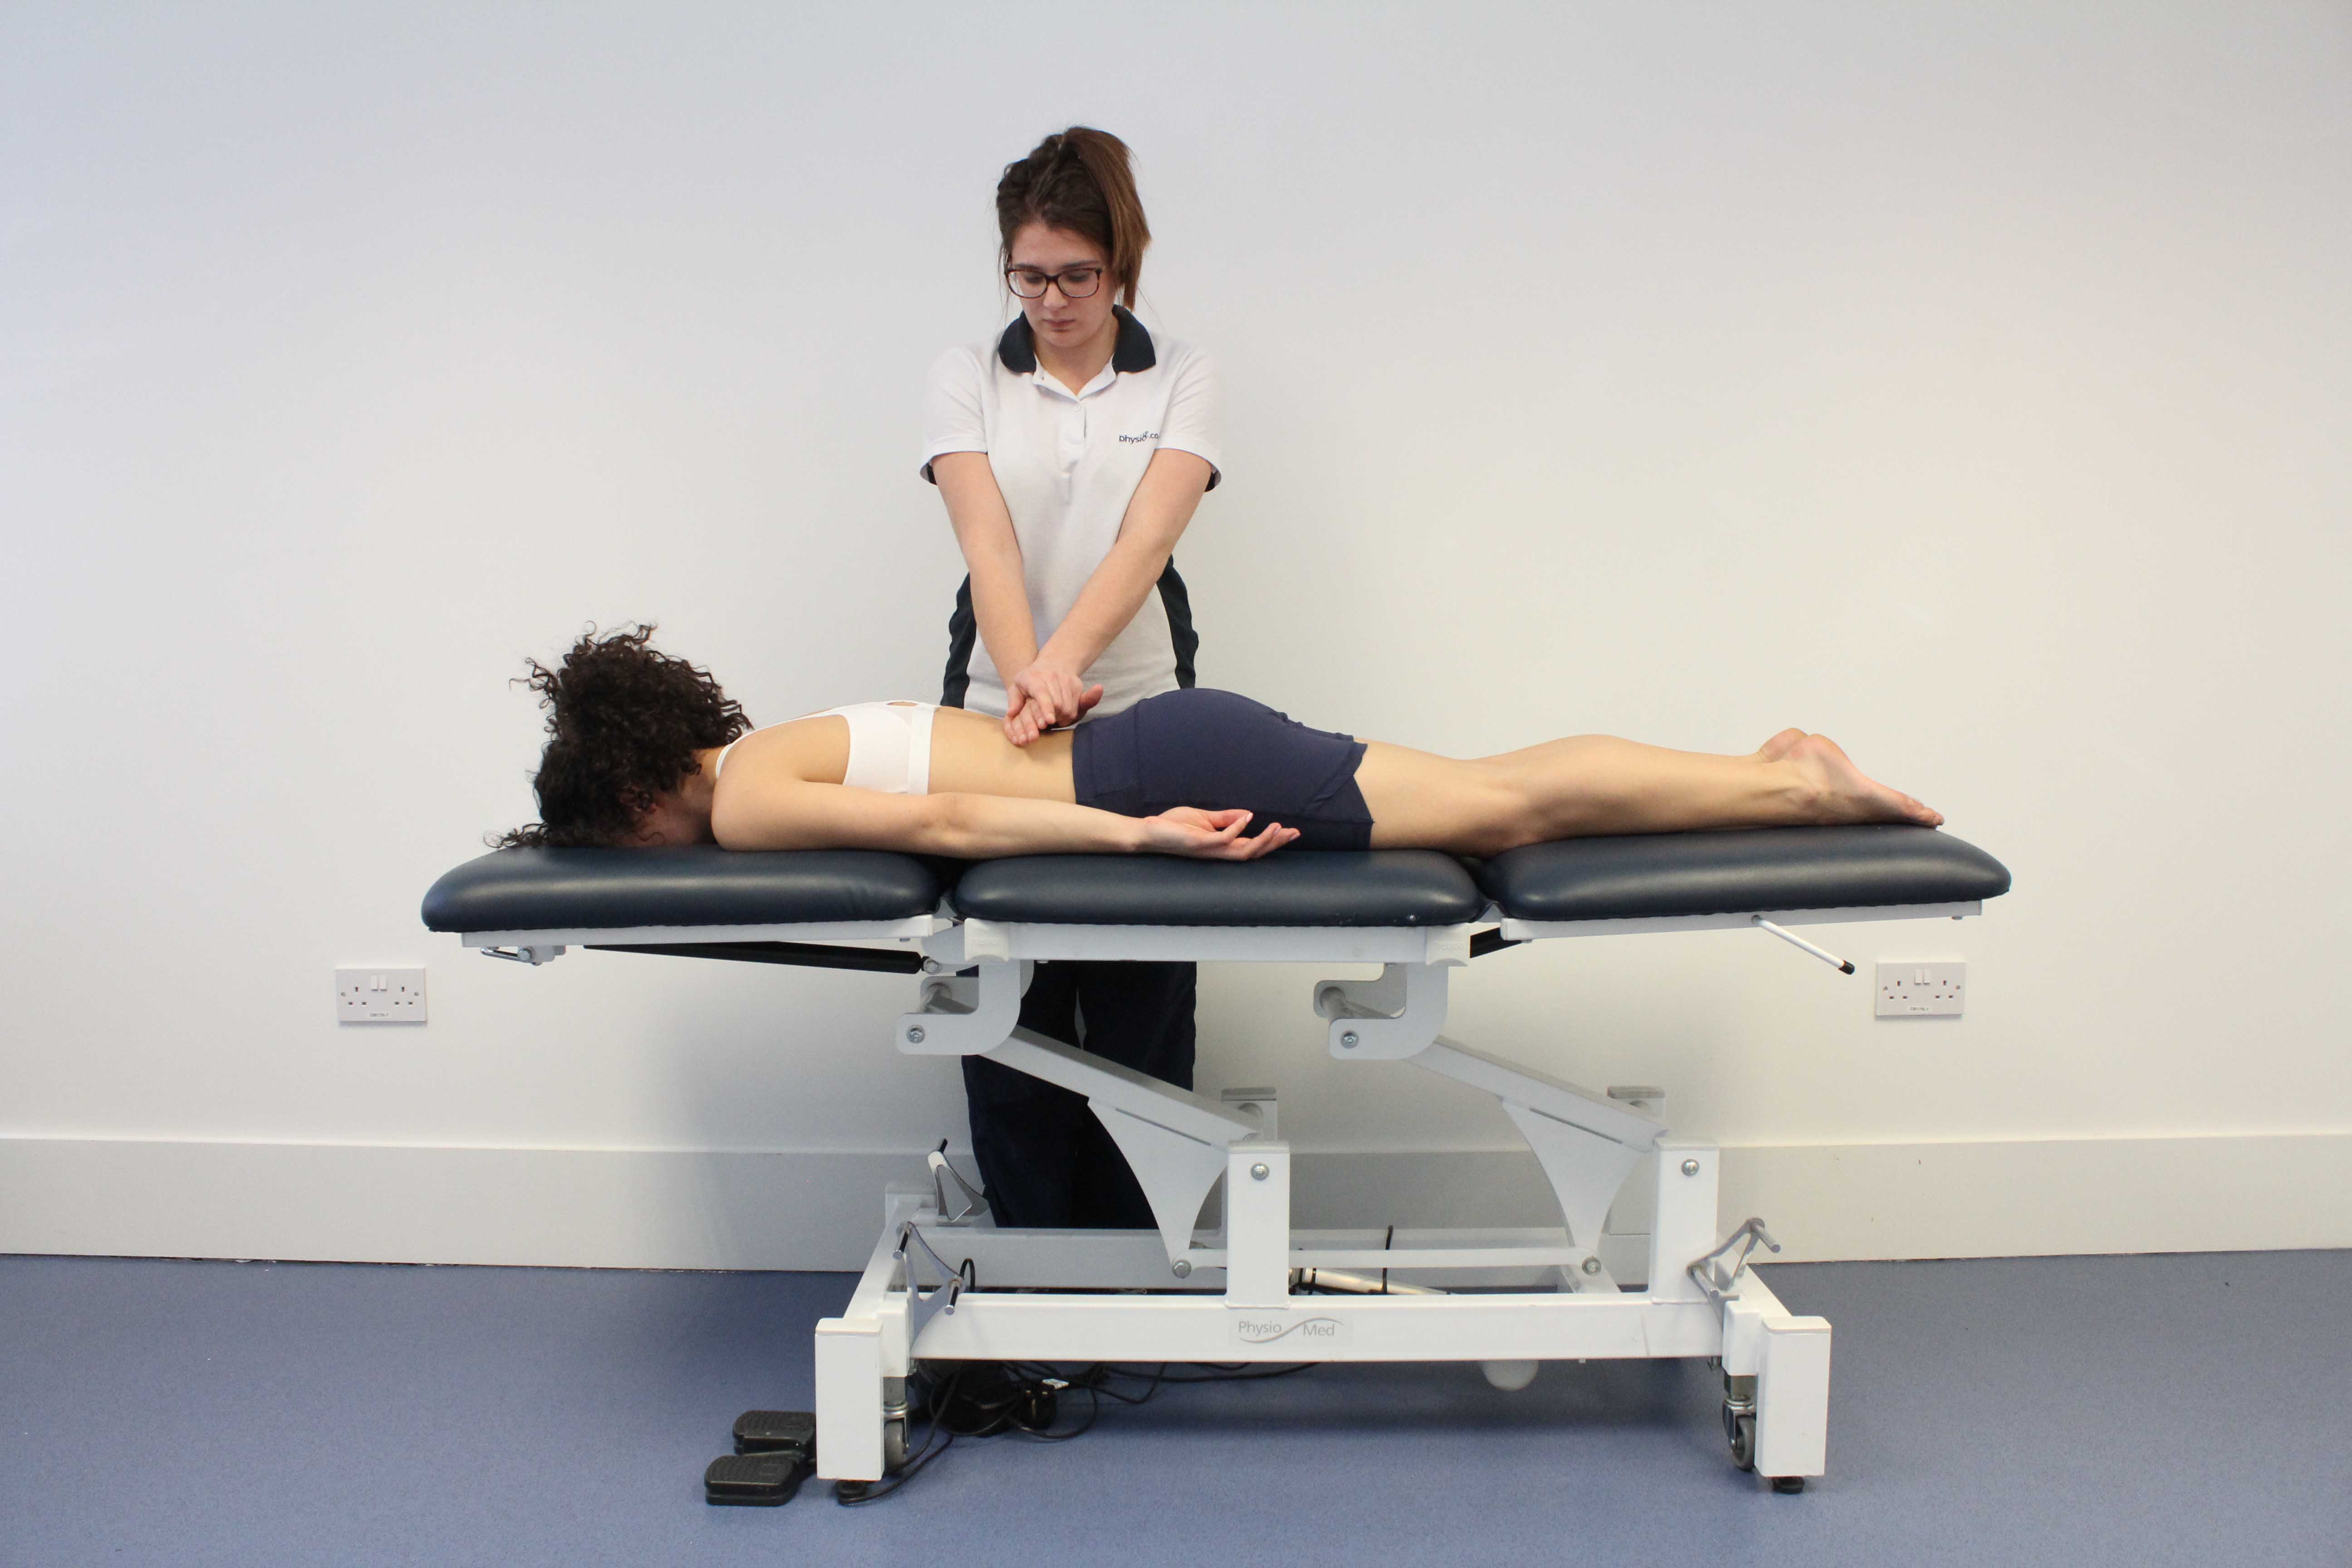 Lumbar spine mobilisations to relieve pain and stiffness perfomed by a musculoskeletal physiotherapist